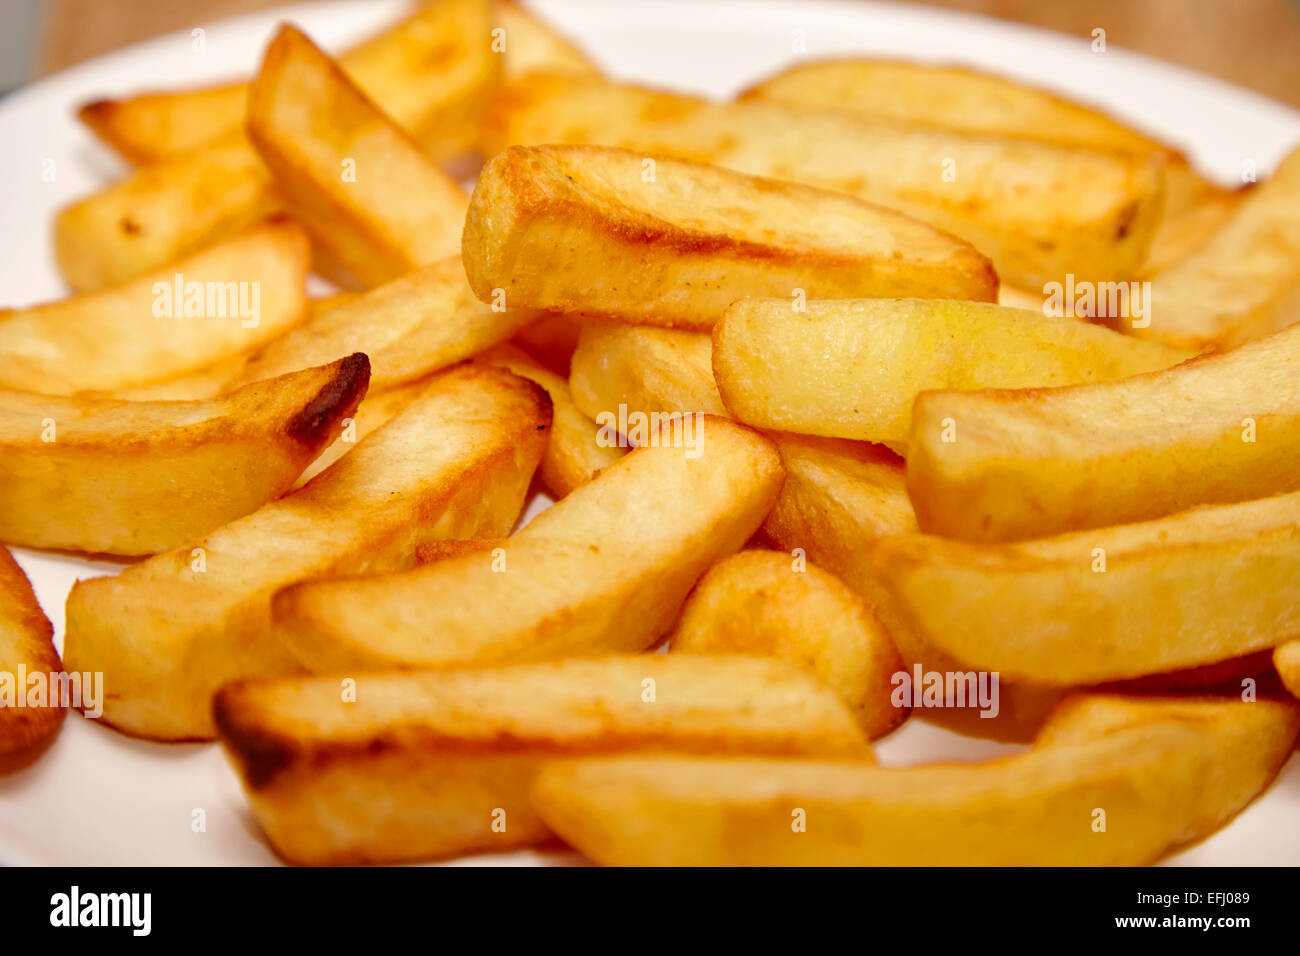 plate of cooked oven chips - Stock Image